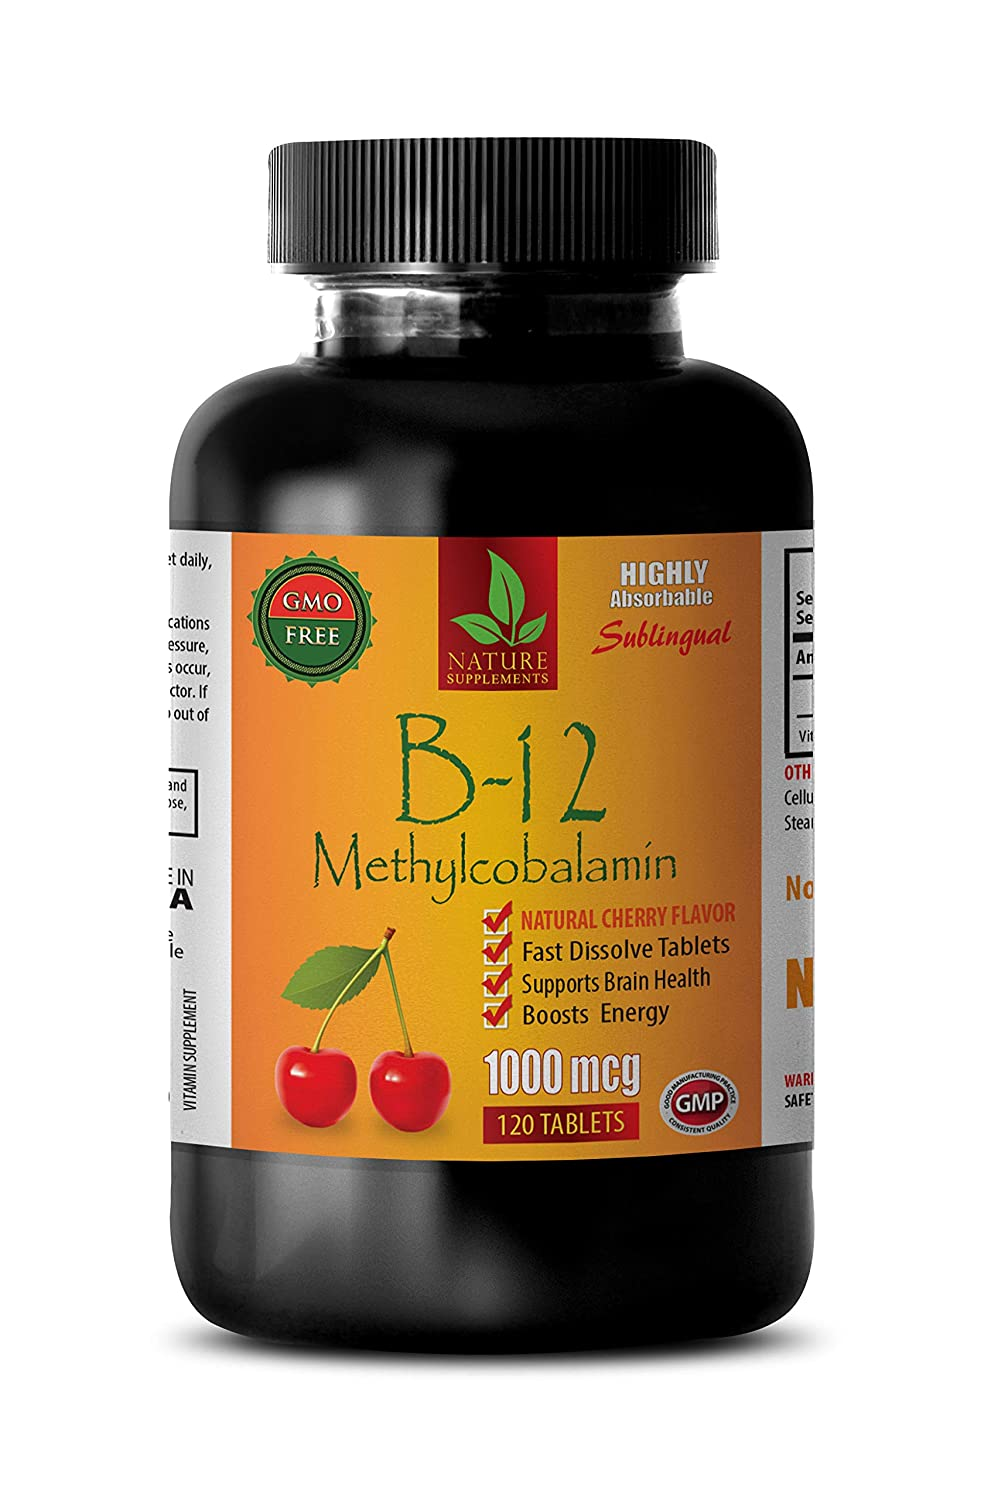 Brain Booster Supplements Focus Memory - B-12 METHYLCOBALAMIN 1000 MCG - SUBLINGUAL - Cherry Flavor - methylcobalamin b12 Complex - 1 Bottle 120 Fast Dissolve Tablets